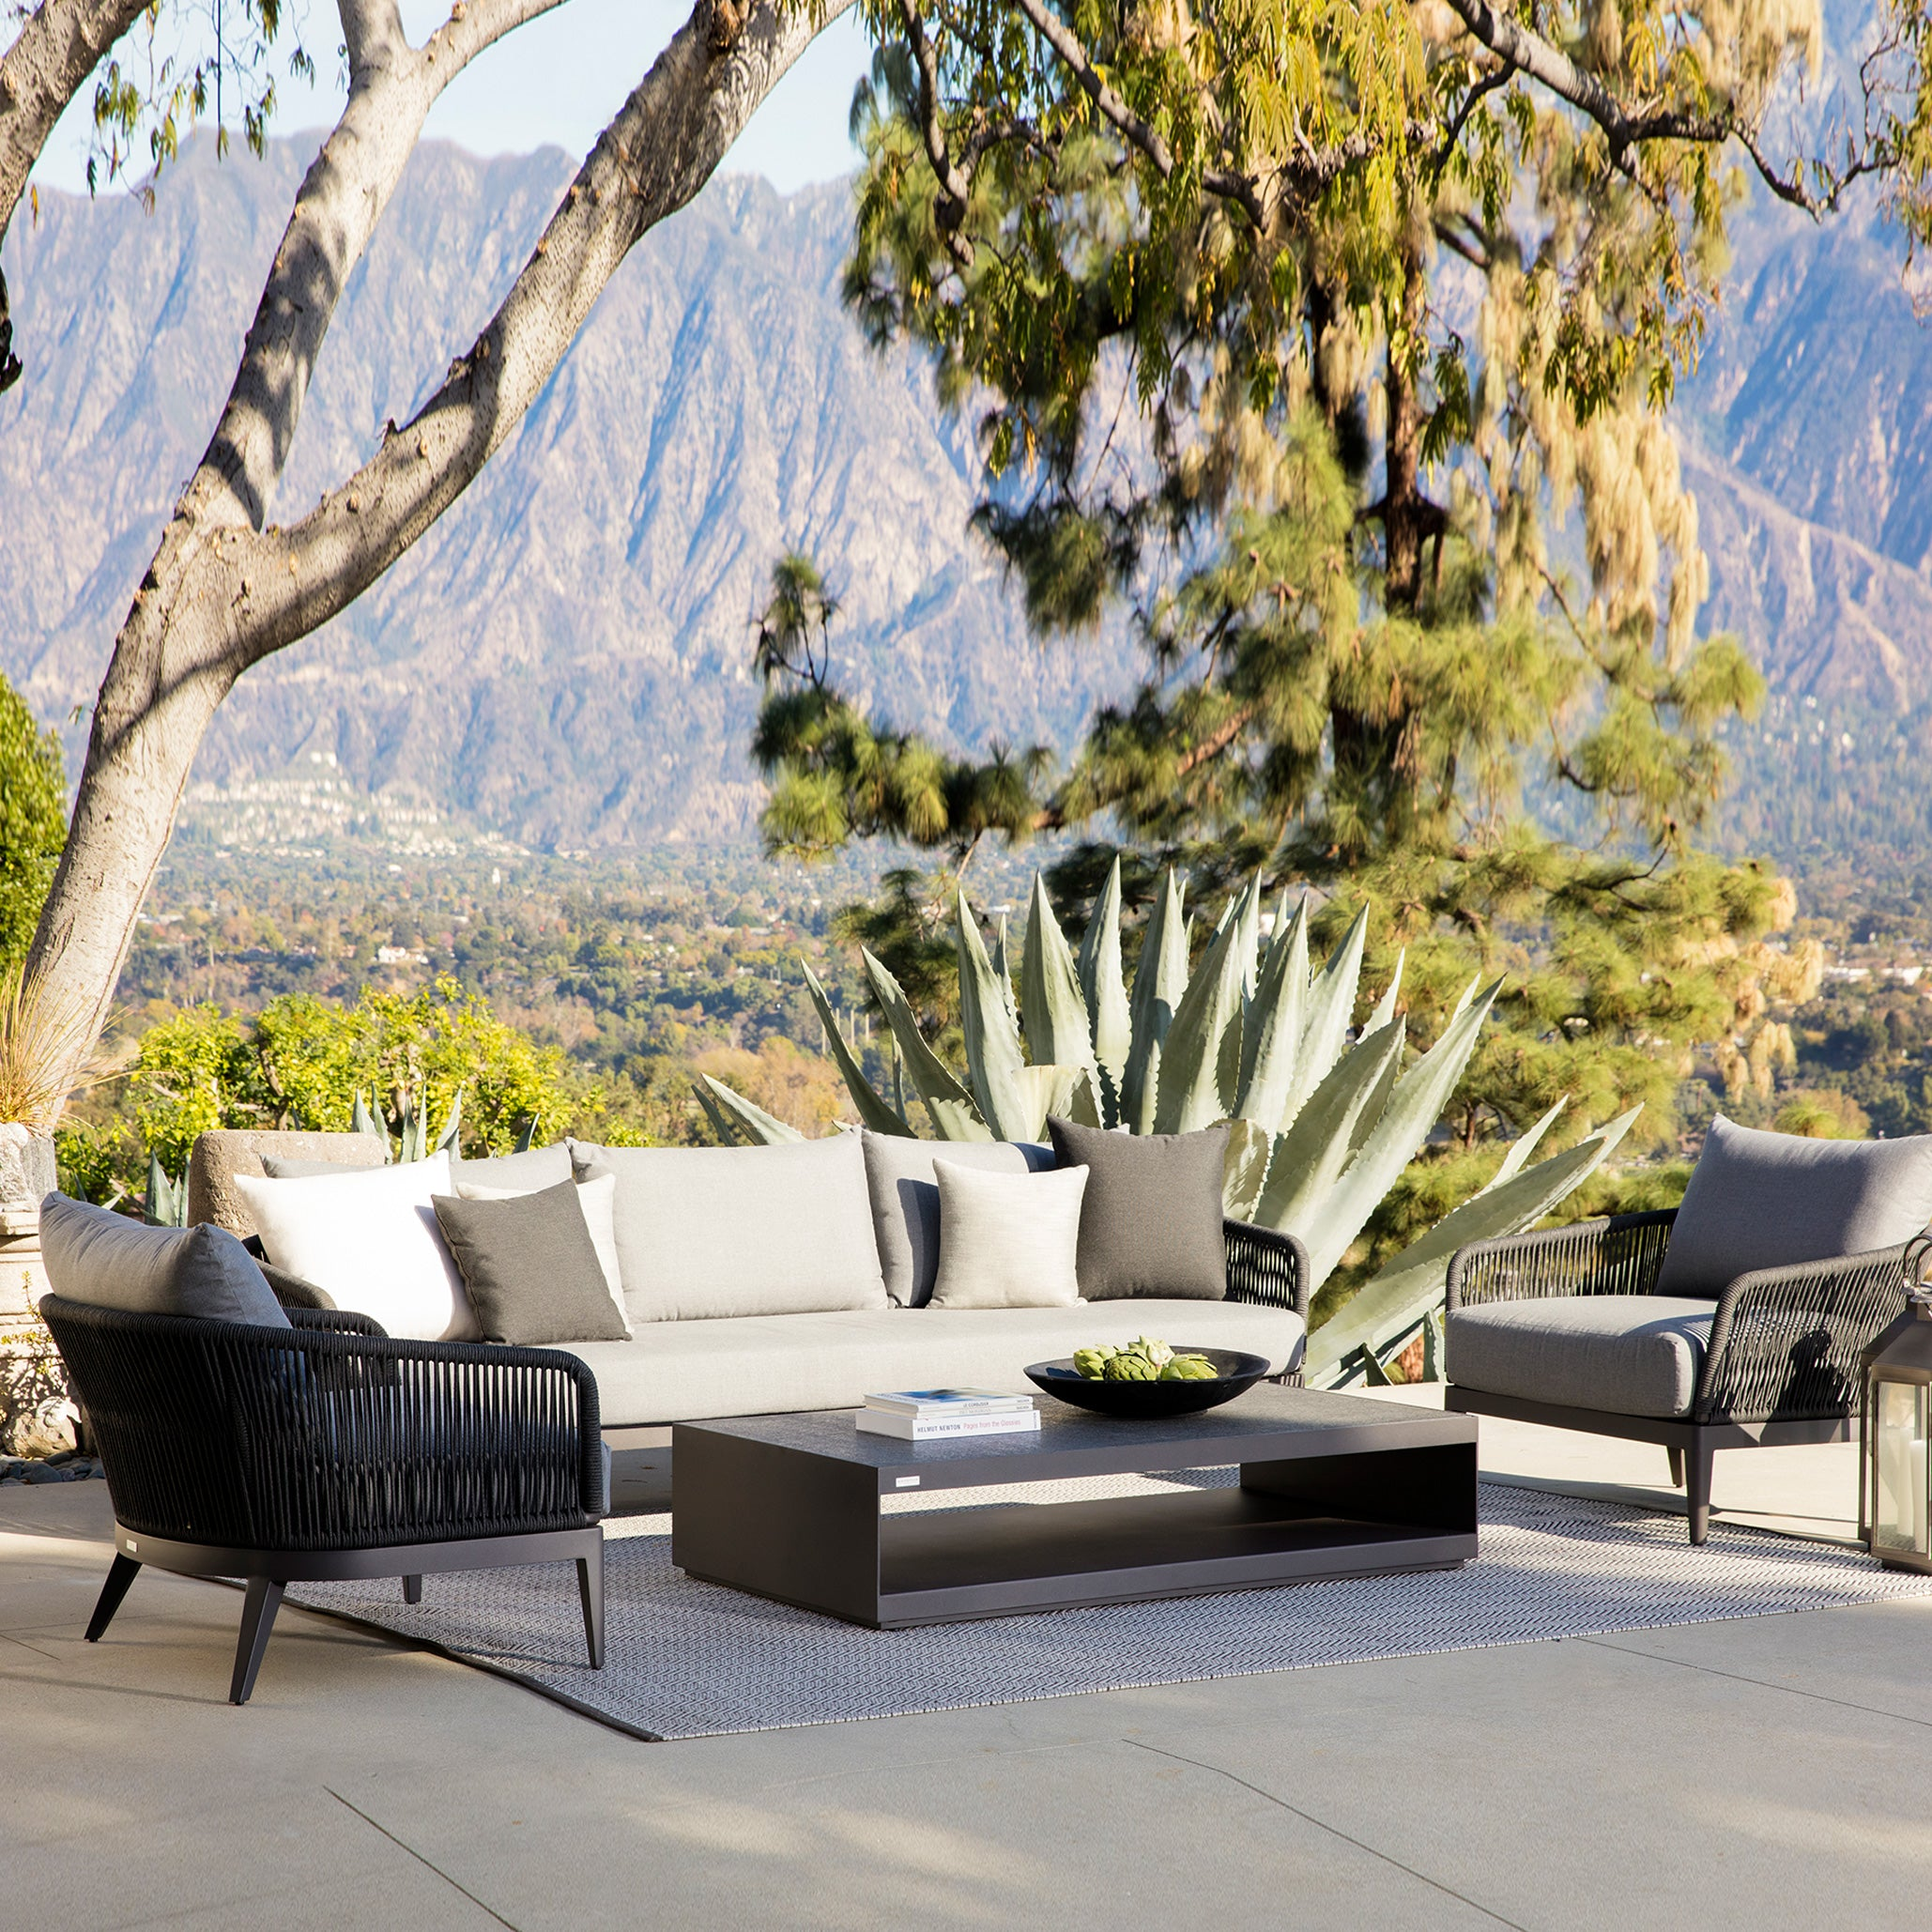 HAMILTON BLACK Lounge Armchair Outdoor | Silver Cushions